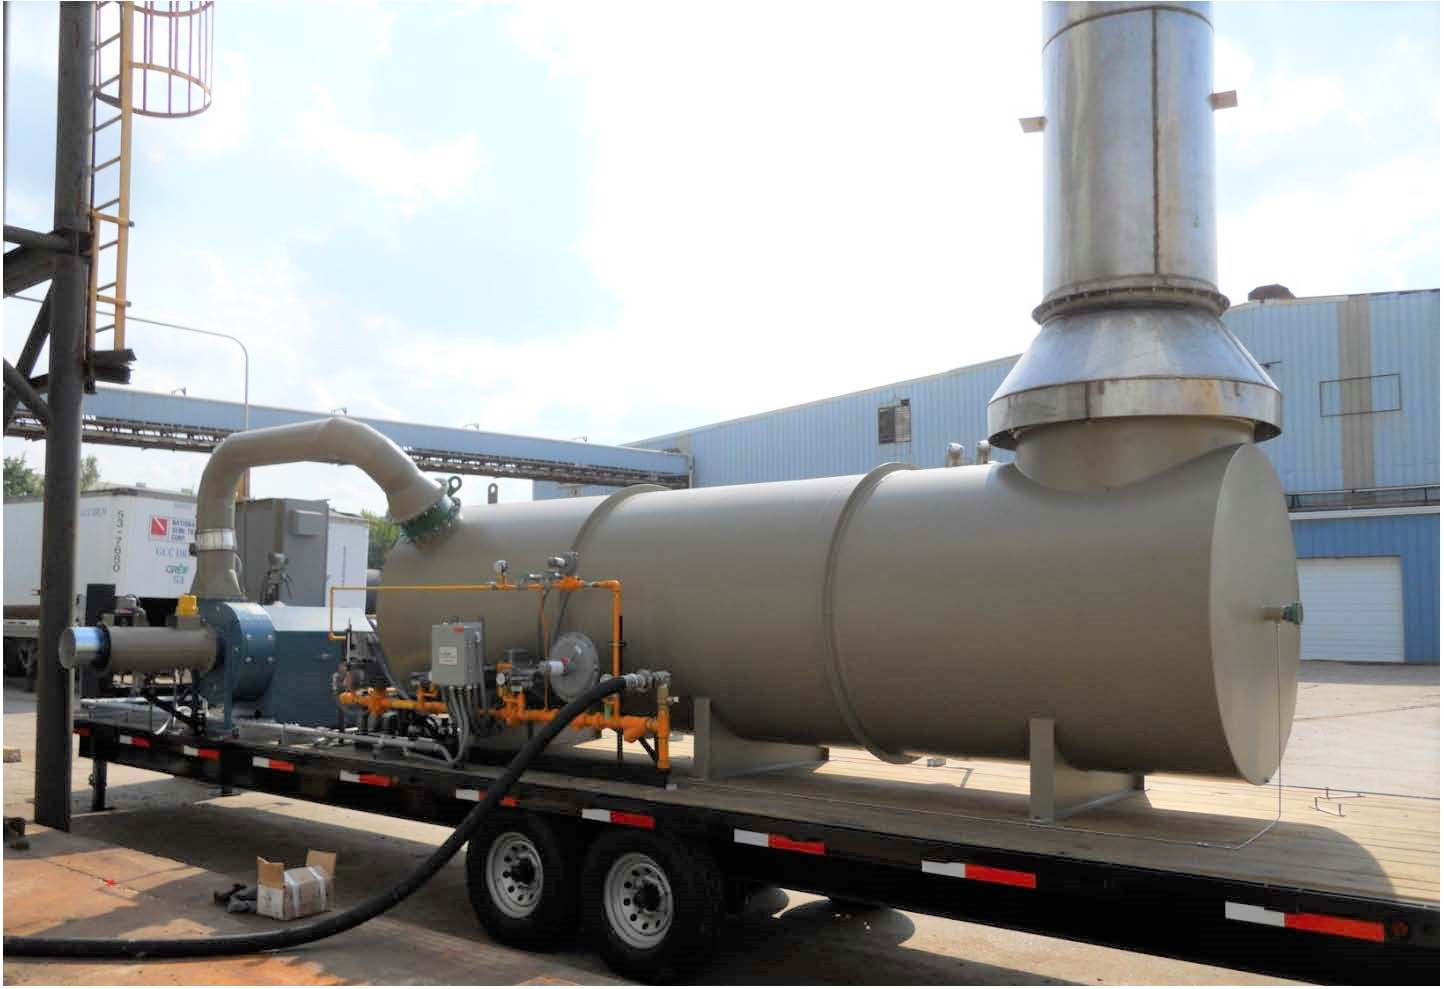 Rental Oxidizer hooked up at site